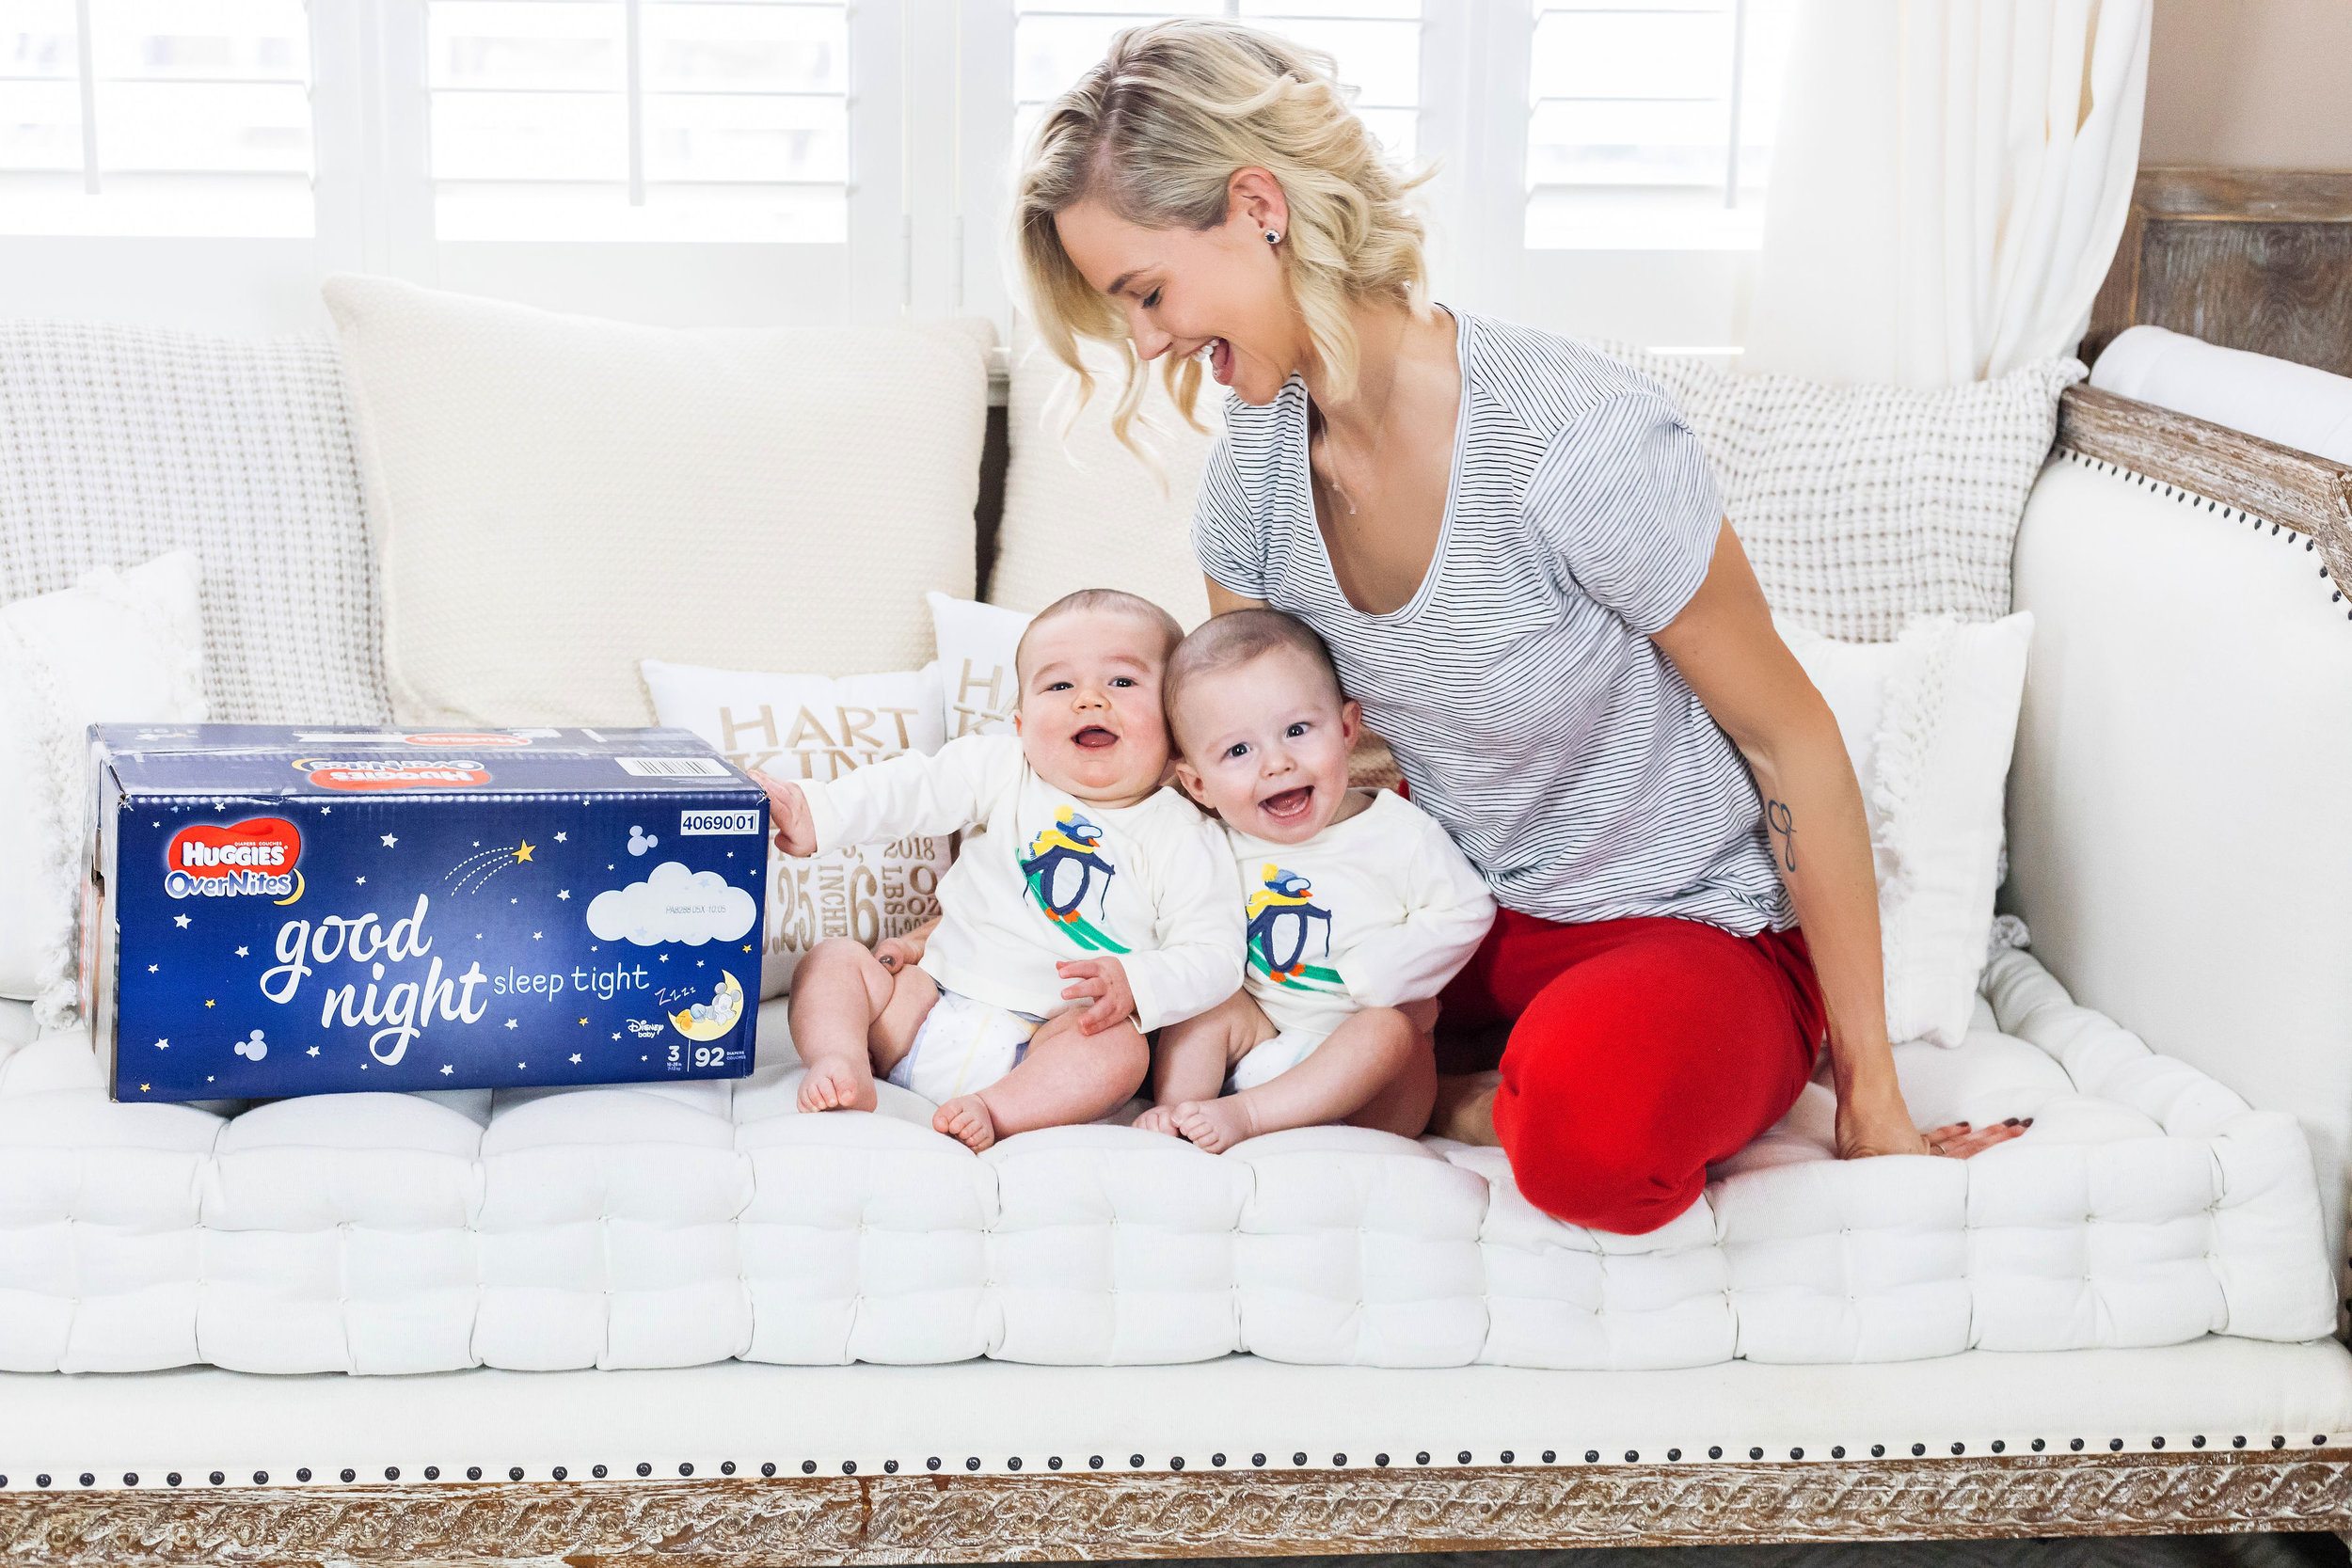 HUGGIES© DIAPERS - We curated content for Meghan's paid partnership with Huggies© Diapers.